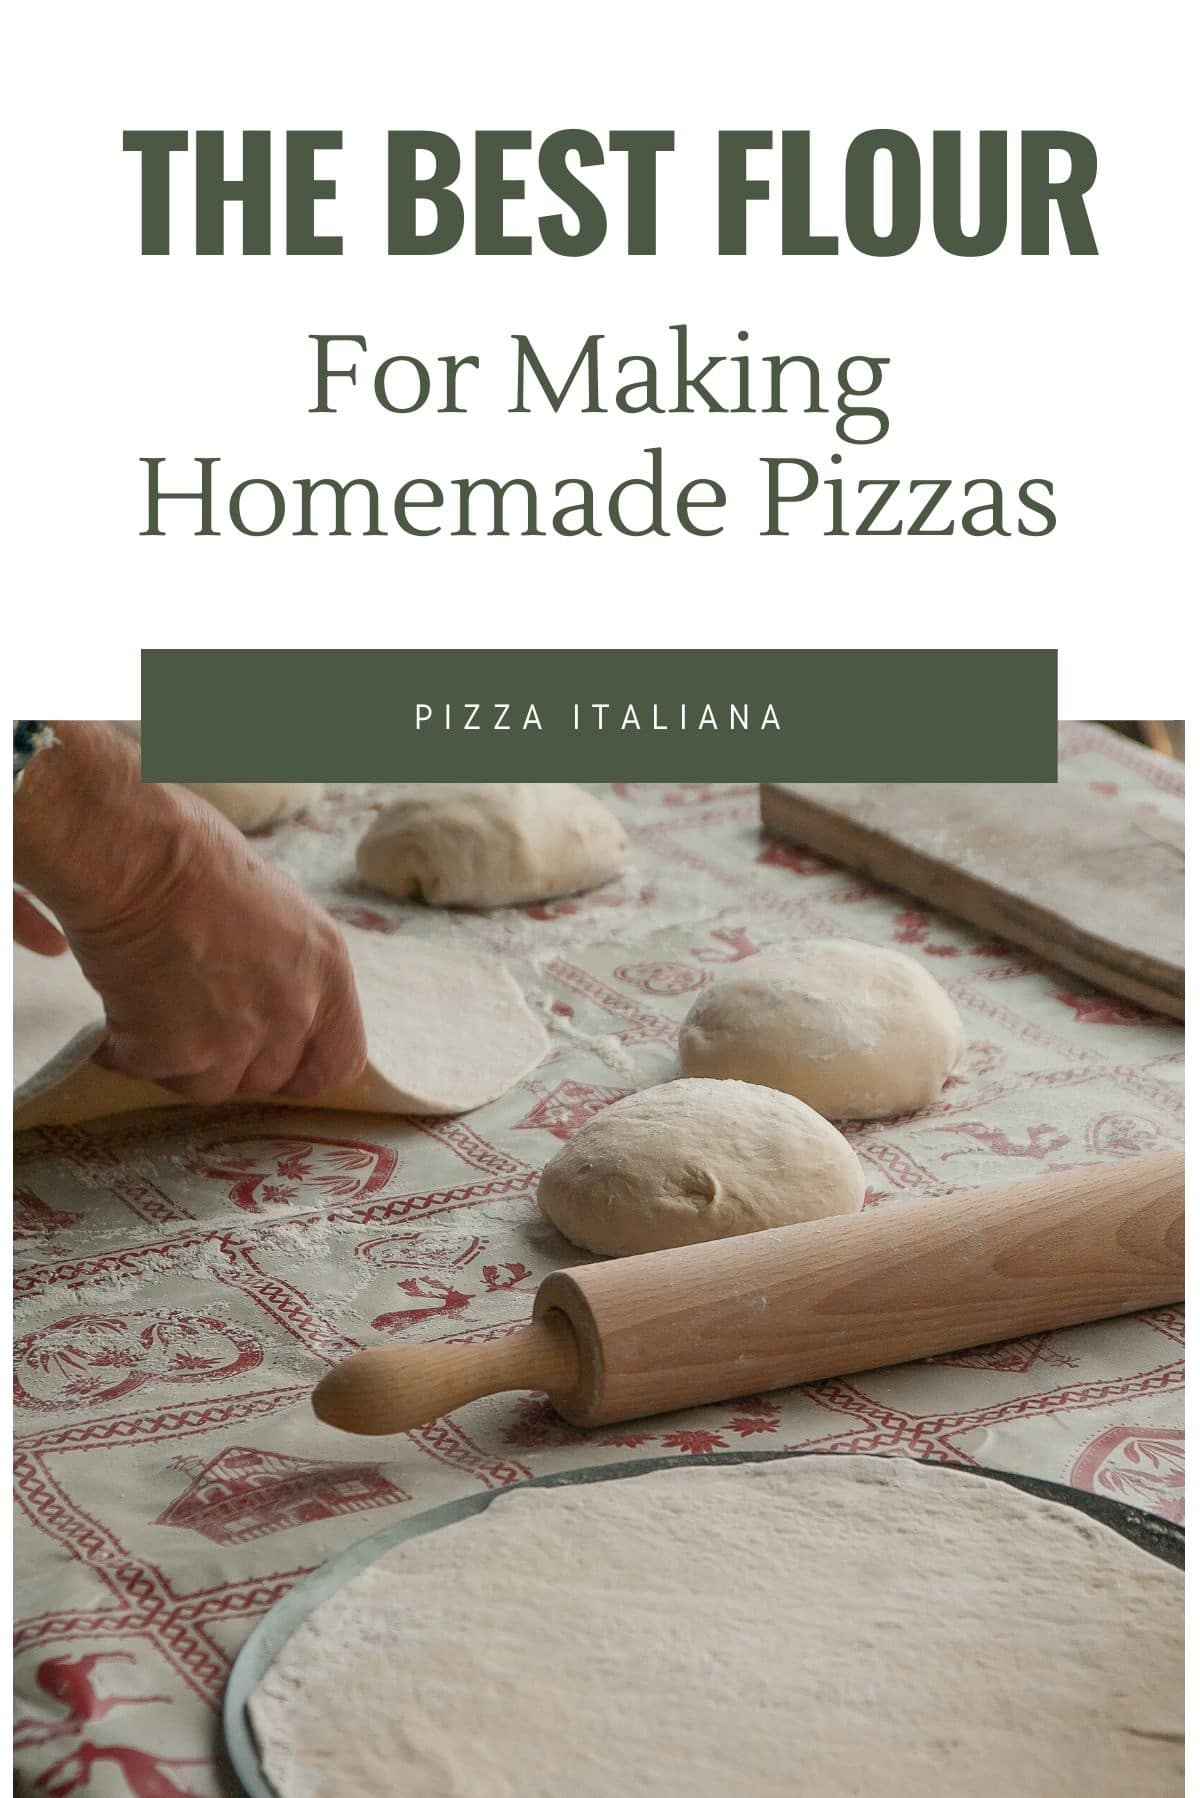 A graphic for the best flour for making homemade pizzas